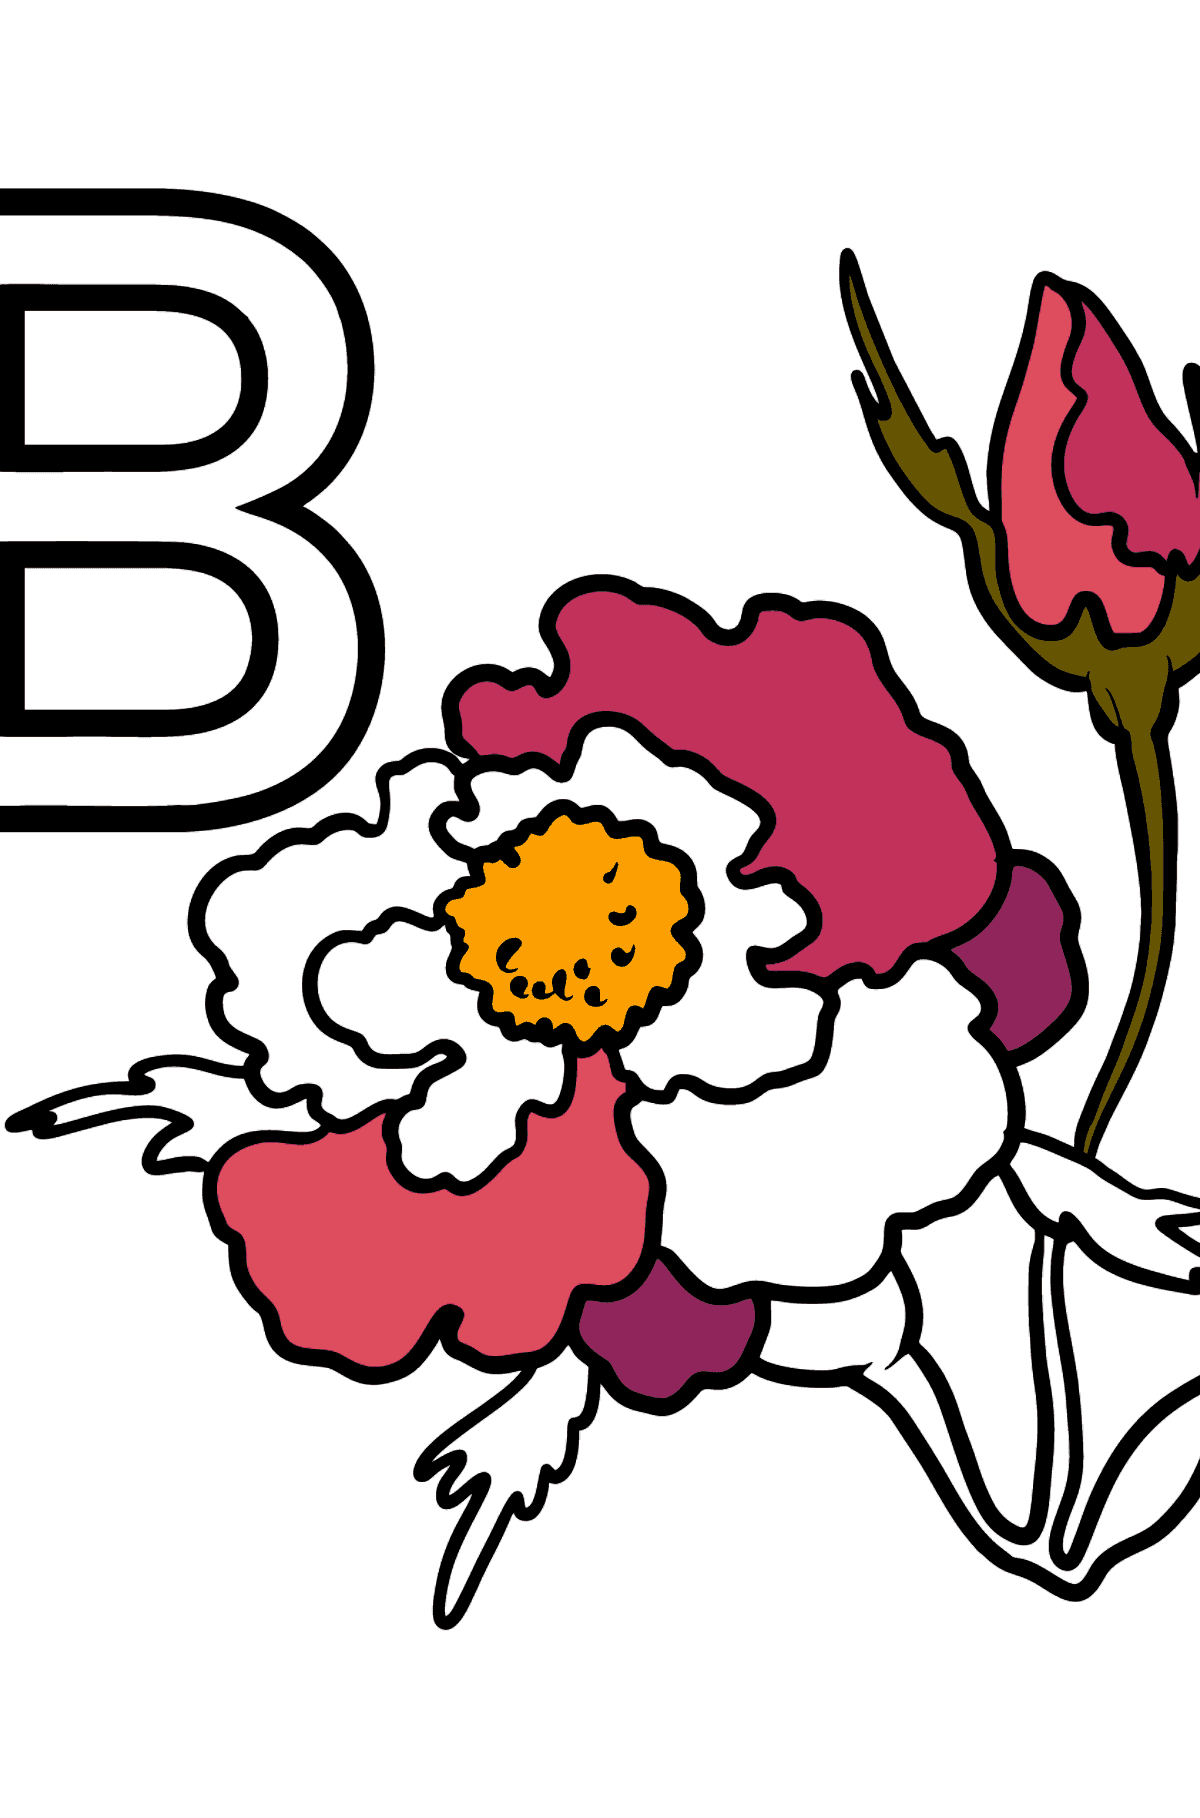 German Letter B coloring pages - BLUME